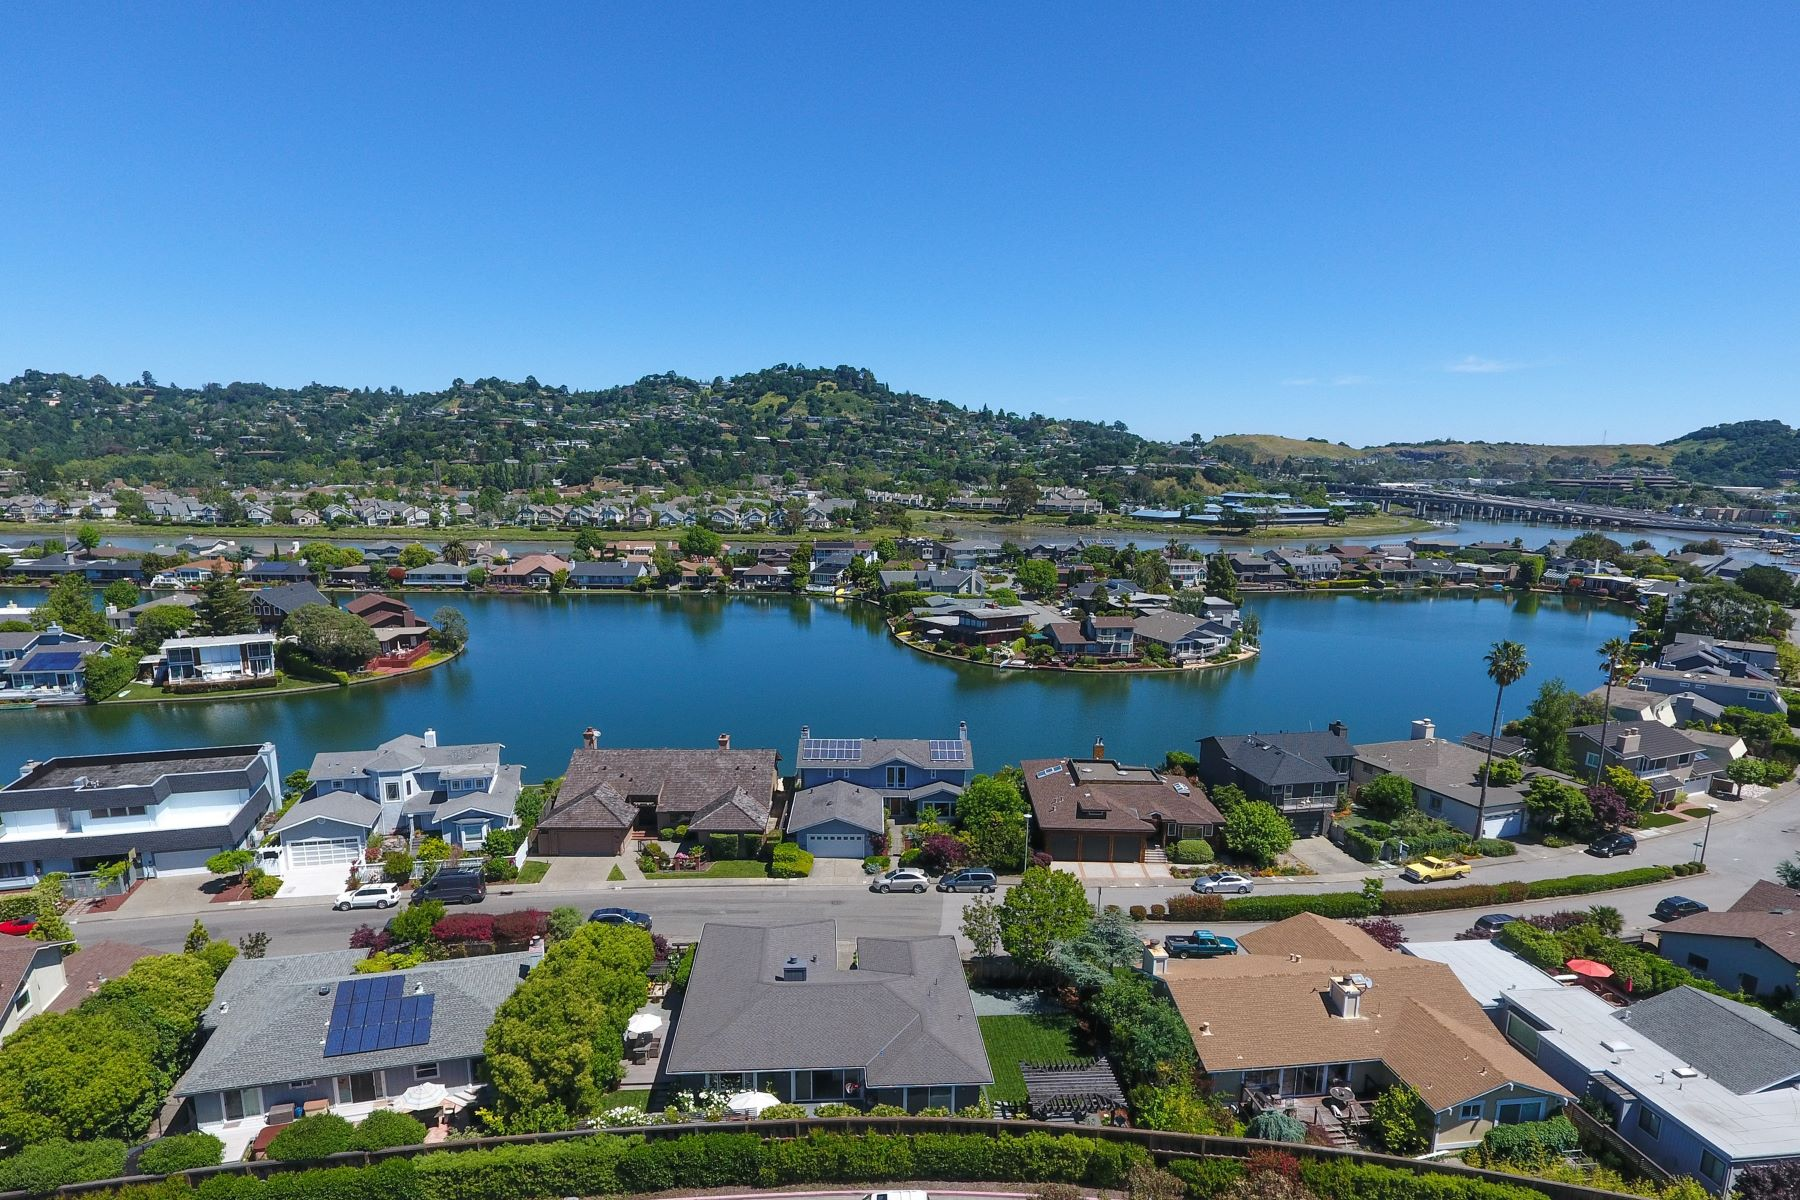 Single Family Home for Sale at Lovely View Home in Larkspur Marina 84 Via La Brisa Larkspur, California 94939 United States